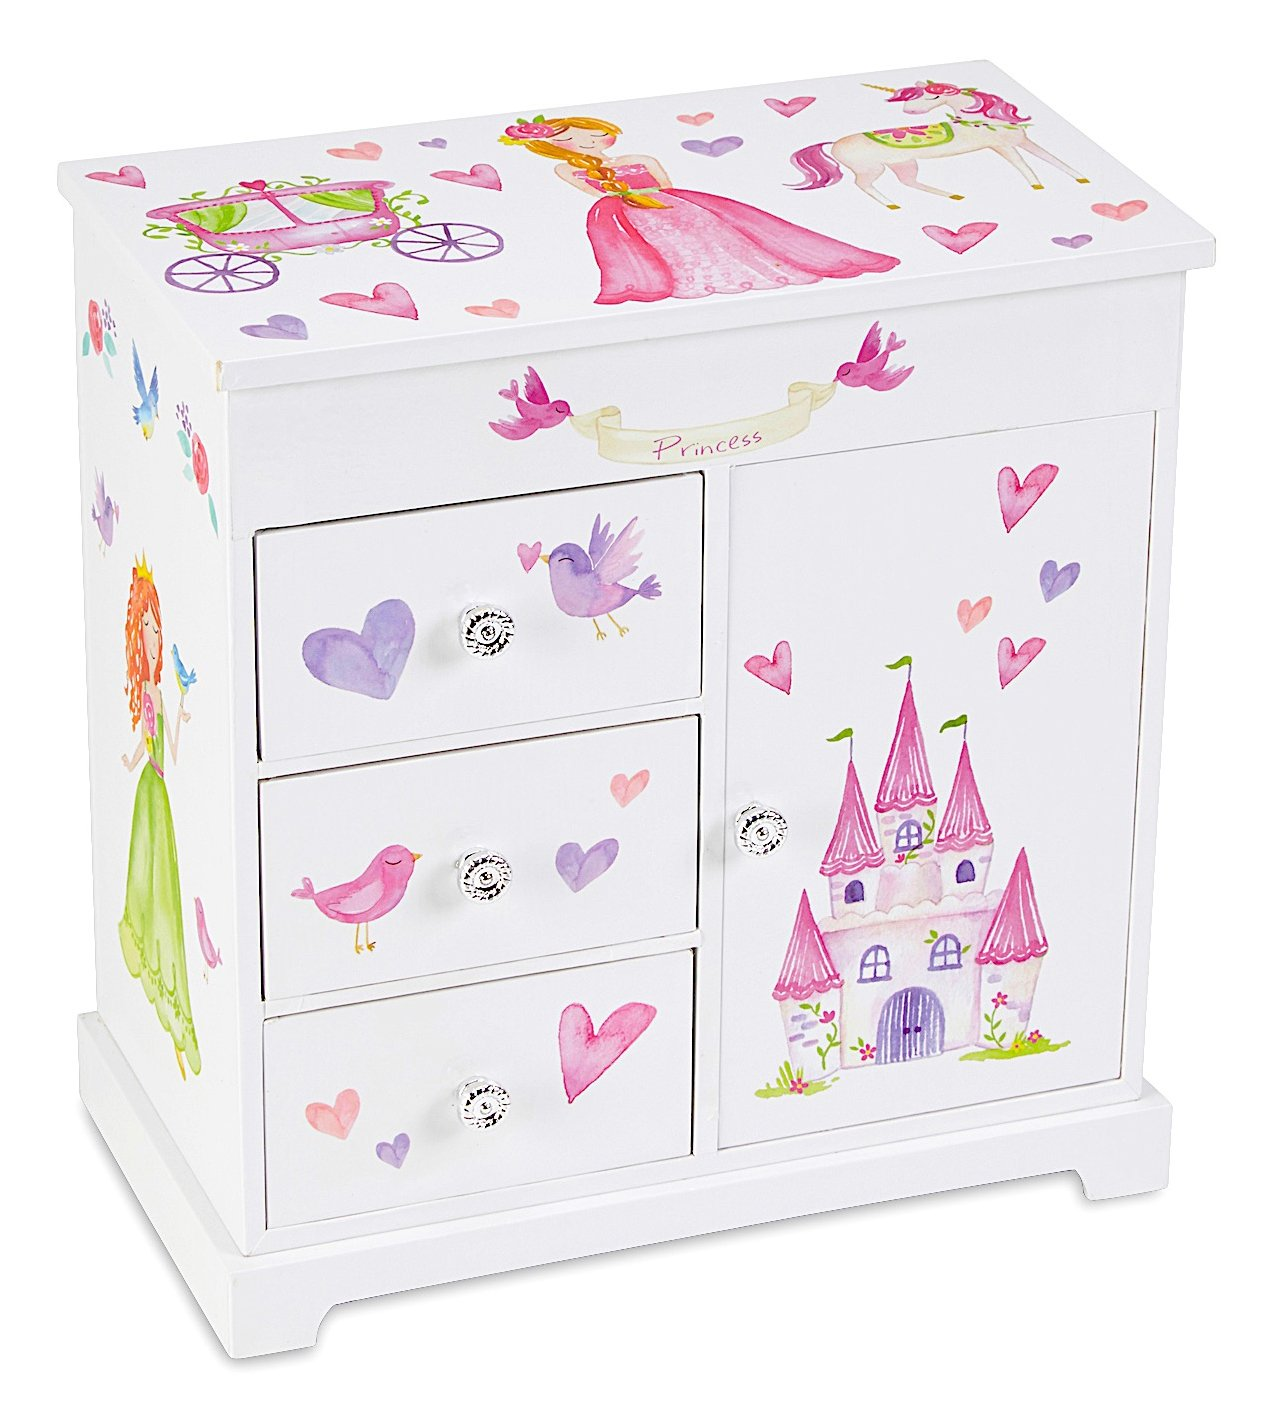 JewelKeeper Unicorn Musical Jewelry Box with 3 Pullout Drawers, Fairy Princess and Castle Design, Dance of the Sugar Plum Fairy Tune by JewelKeeper